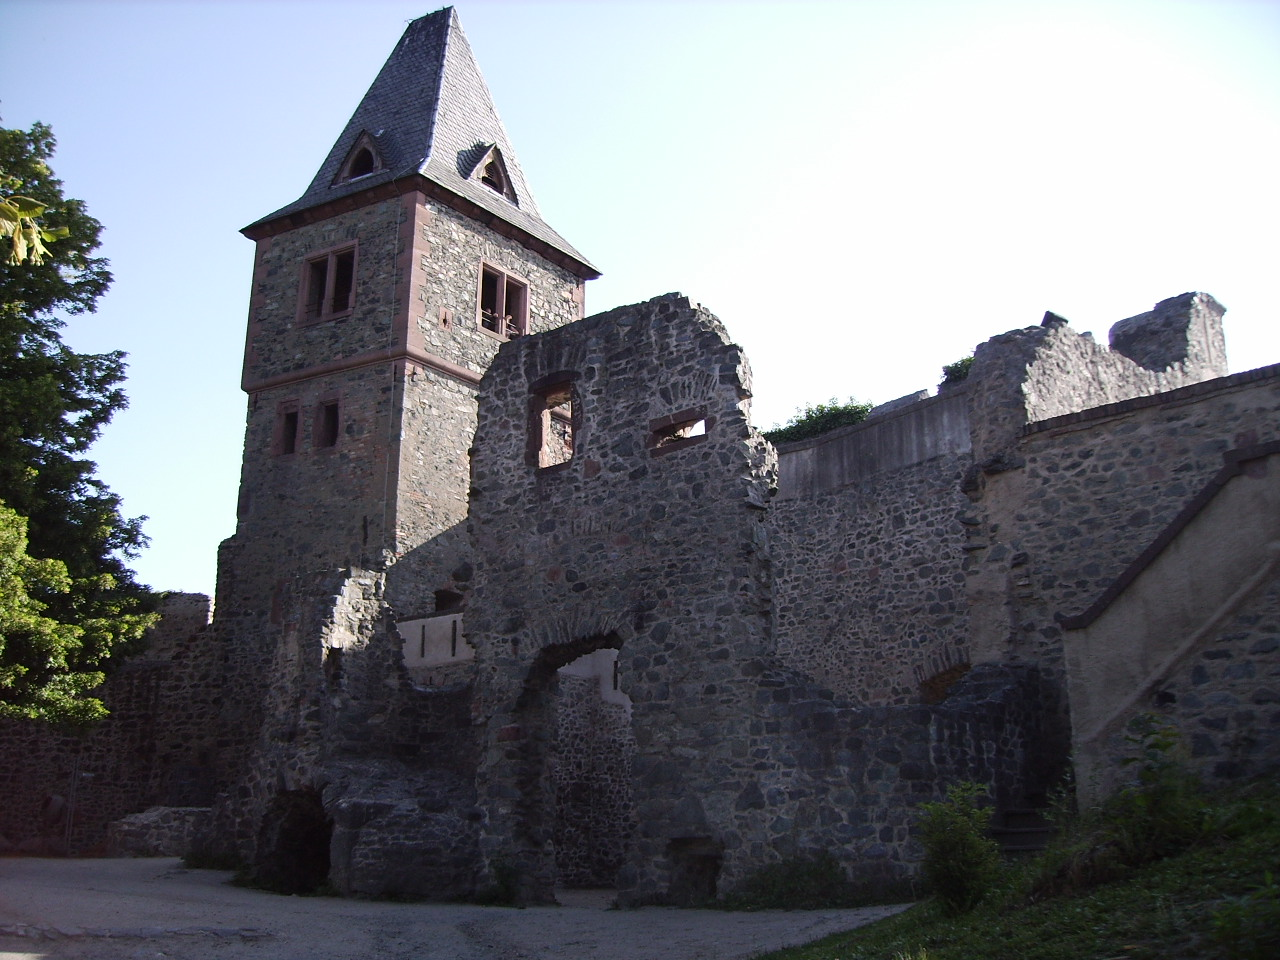 Ruins of the inner castle and tower of Burg Frankenstein n the Odenwald overlooking the city of Darmstadt, Germany. It is thought that this castle may have been an inspiration for Mary Shelley when she wrote her 1818 Gothic novel Frankenstein.